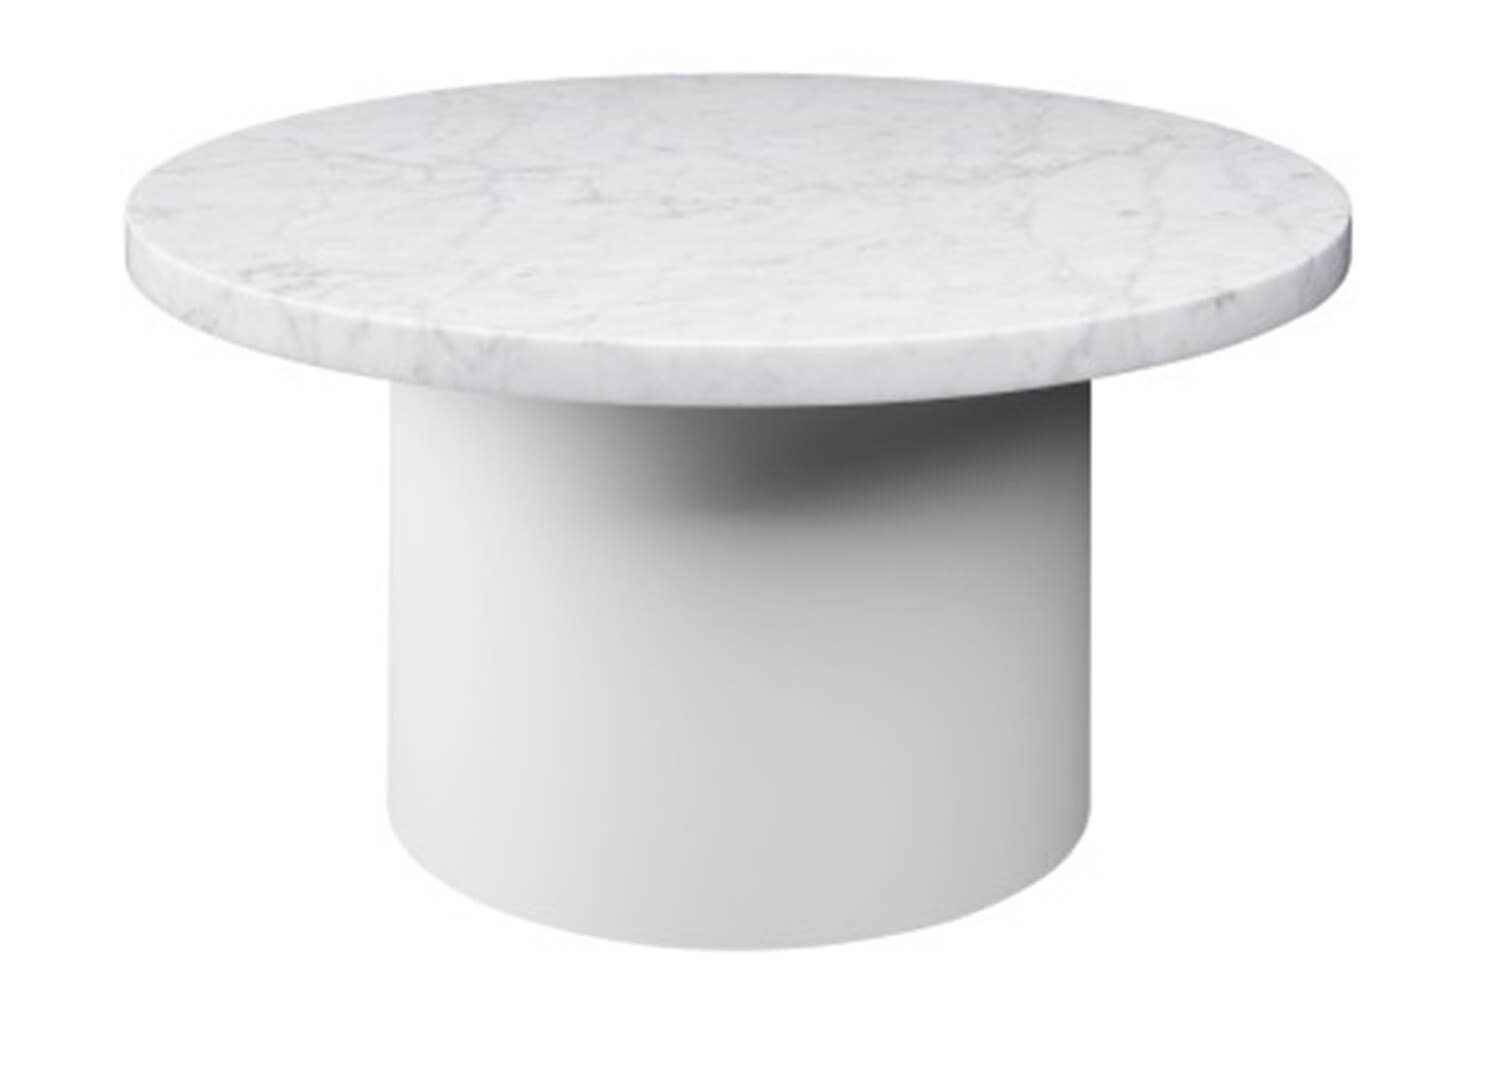 est living design directory living edge CT09 enoki white base white marble